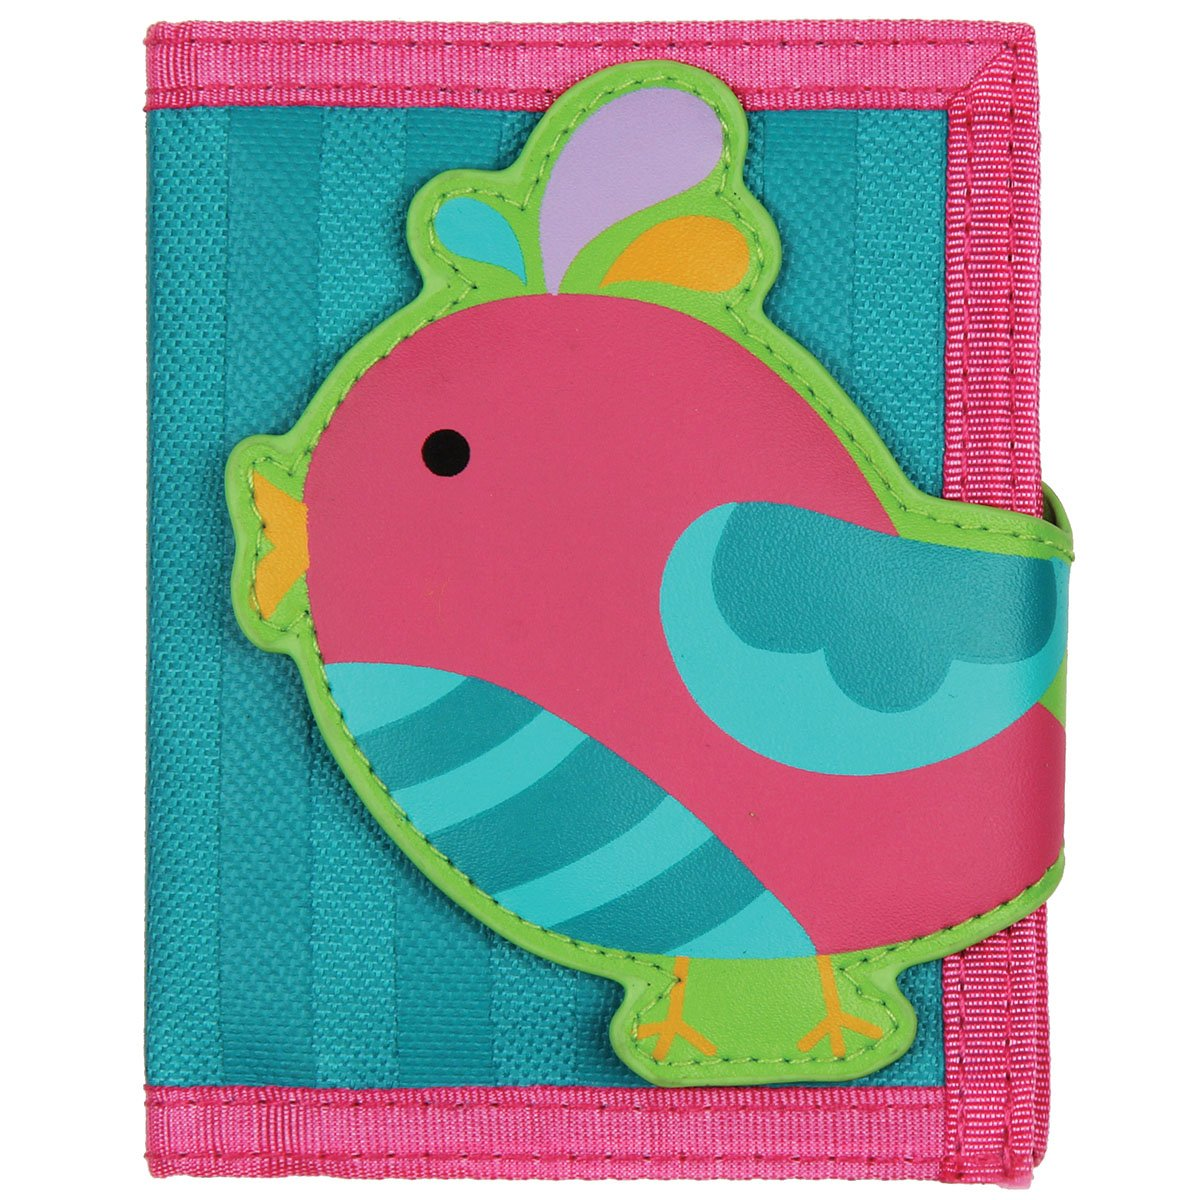 Stephen Joseph Girls Quilted Song Bird Purse and Wallet with Charm by Stephen Joseph (Image #4)